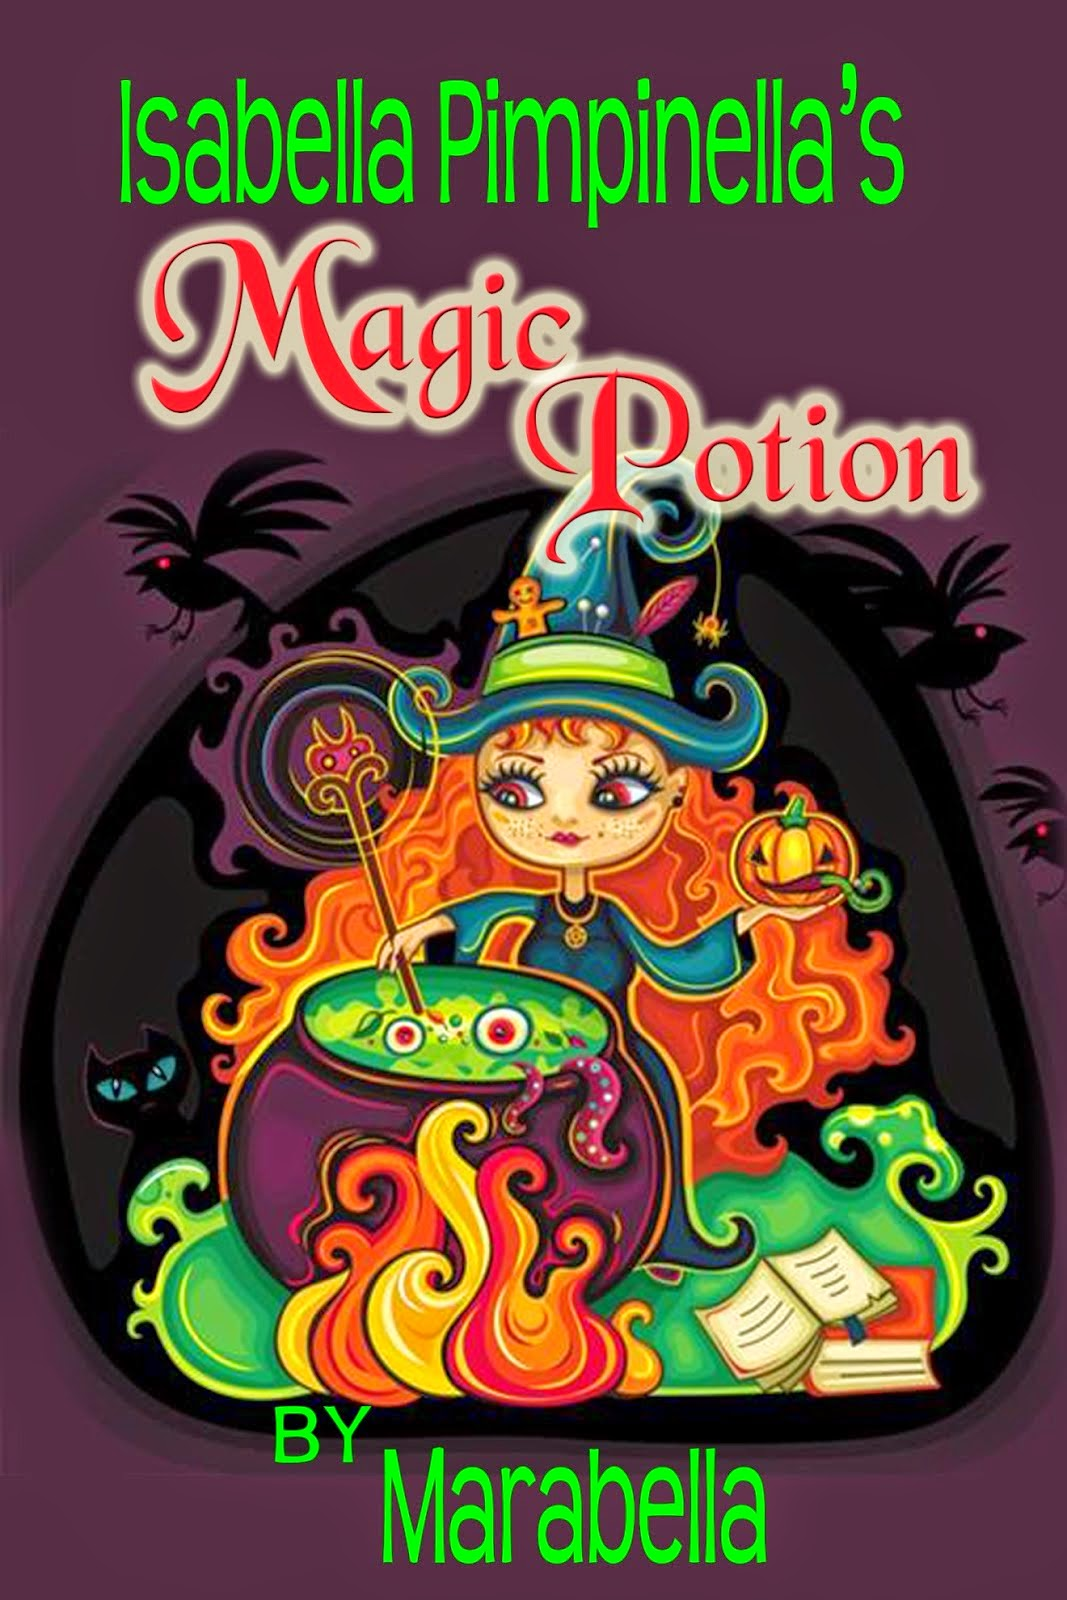 Isabella Pimpinella's Magic Potion